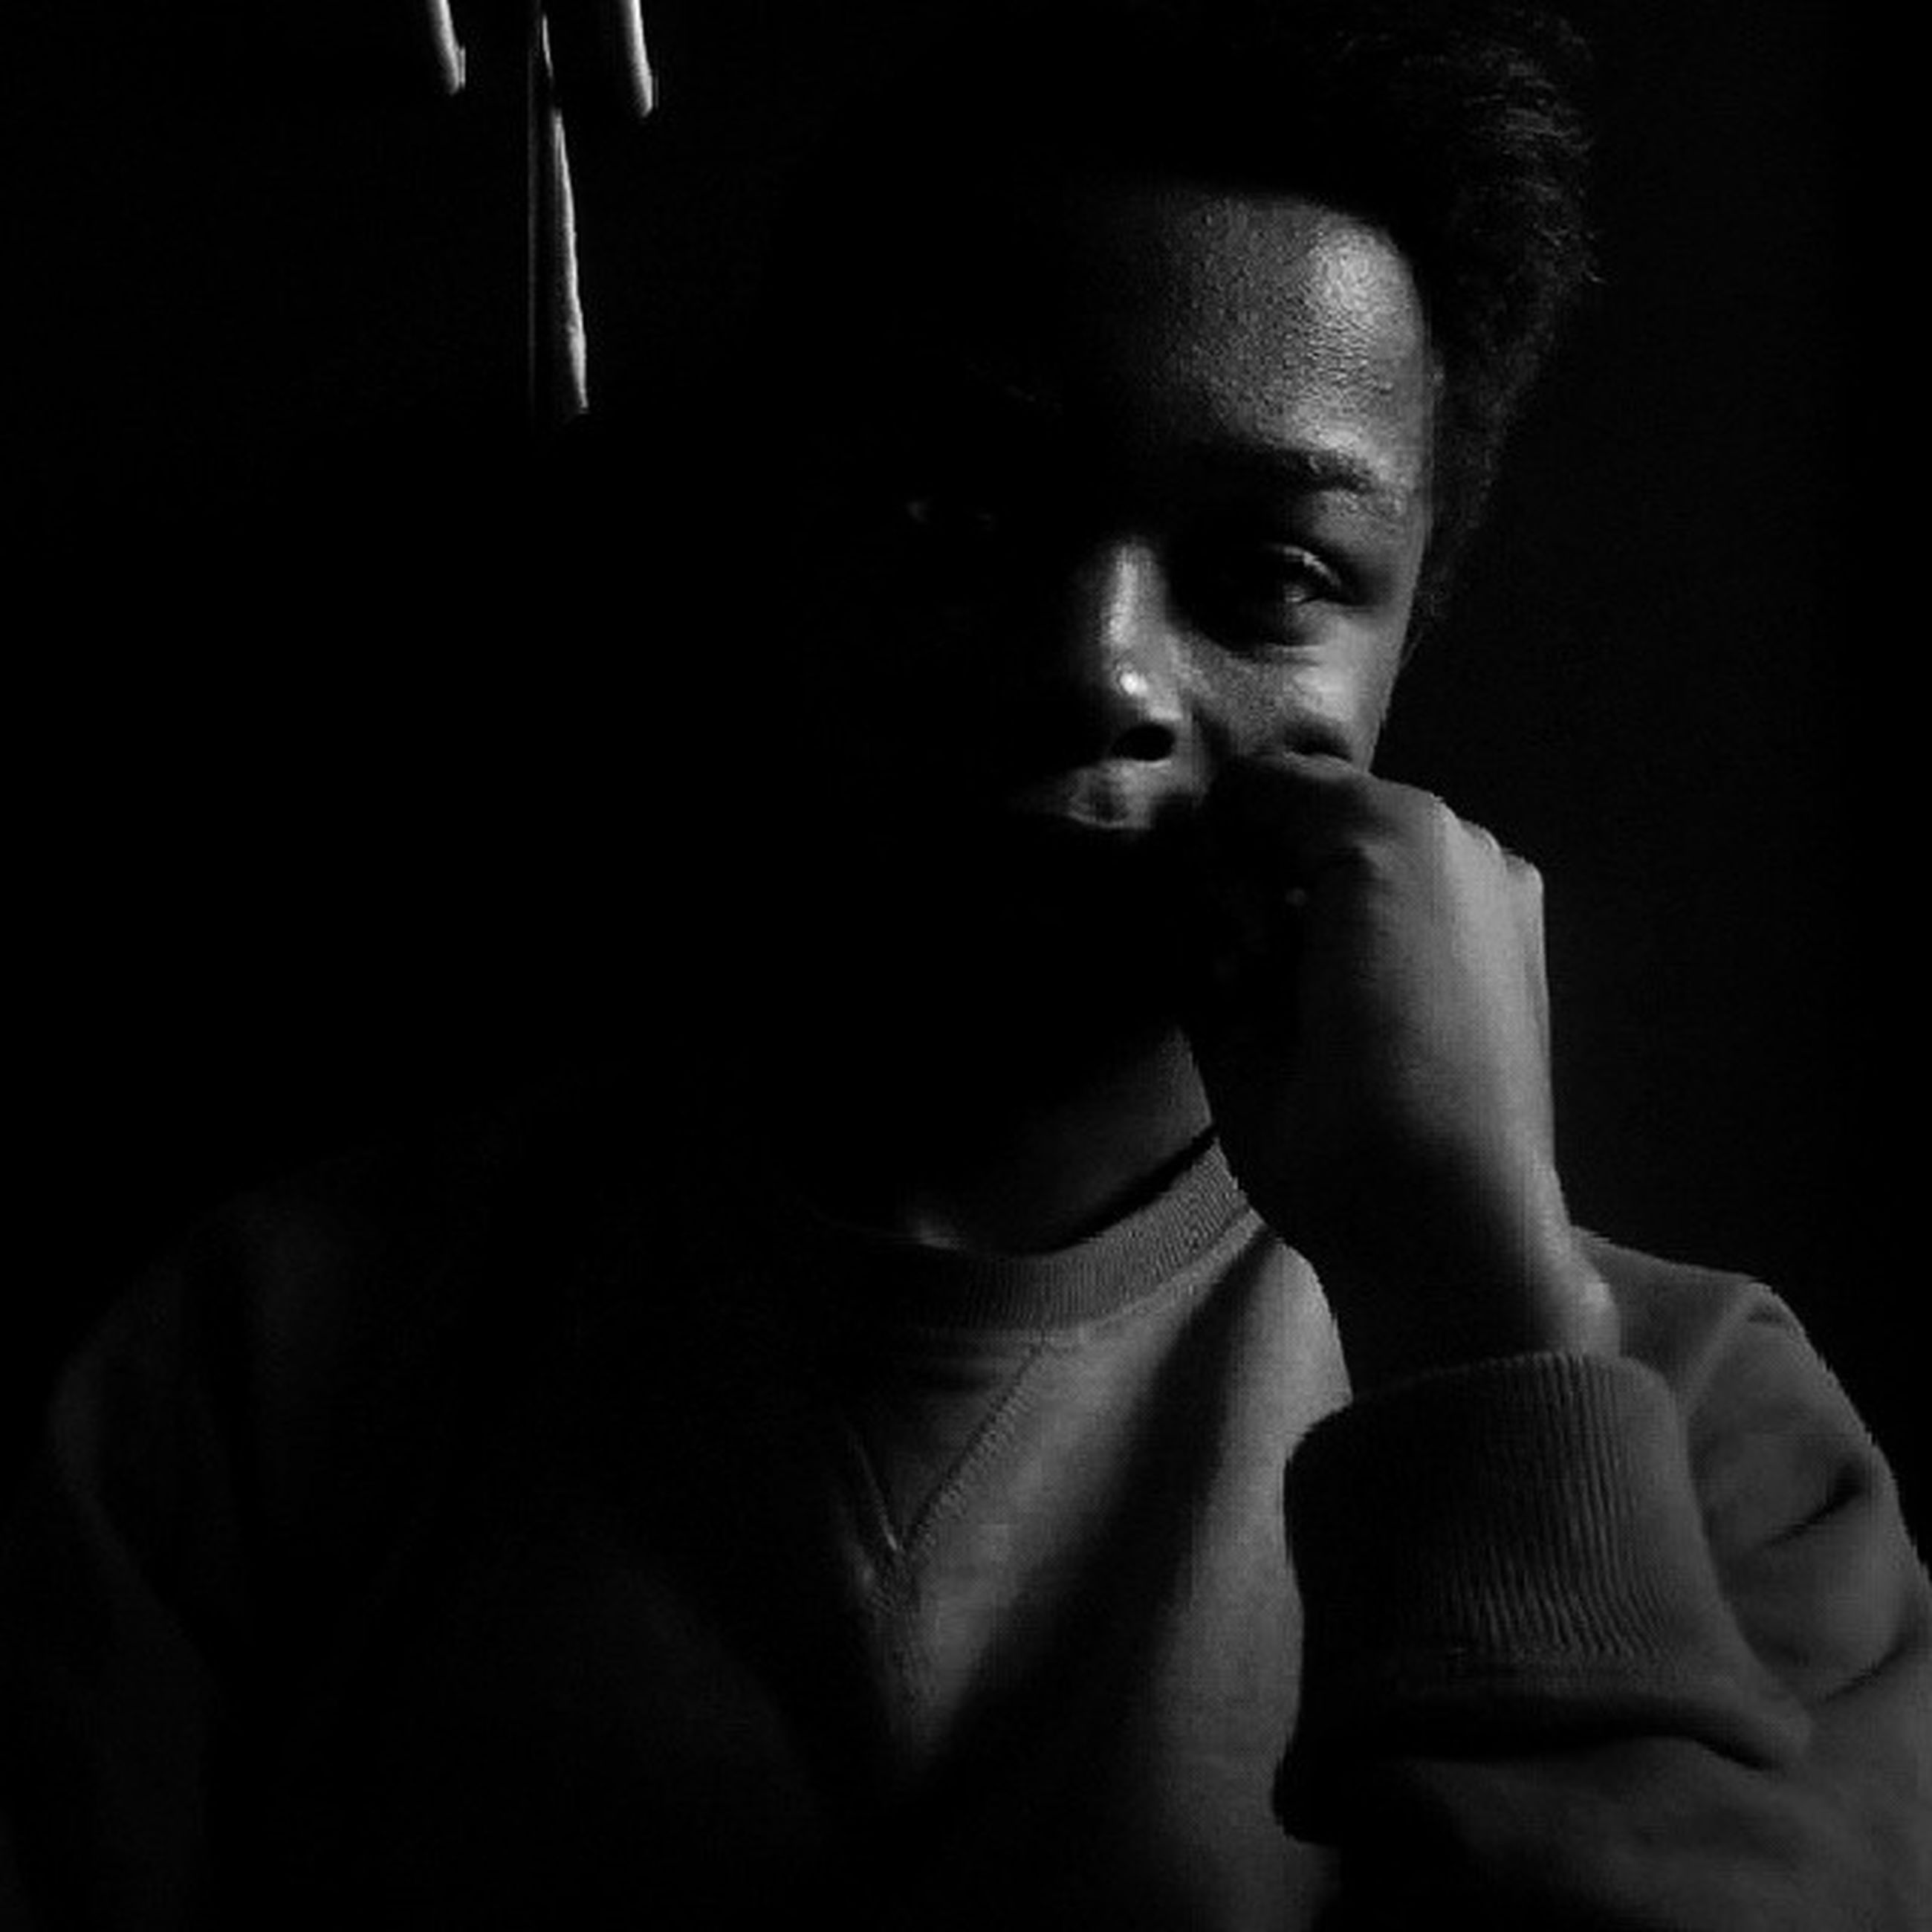 indoors, young adult, person, headshot, lifestyles, front view, contemplation, young men, portrait, studio shot, serious, leisure activity, looking at camera, head and shoulders, black background, casual clothing